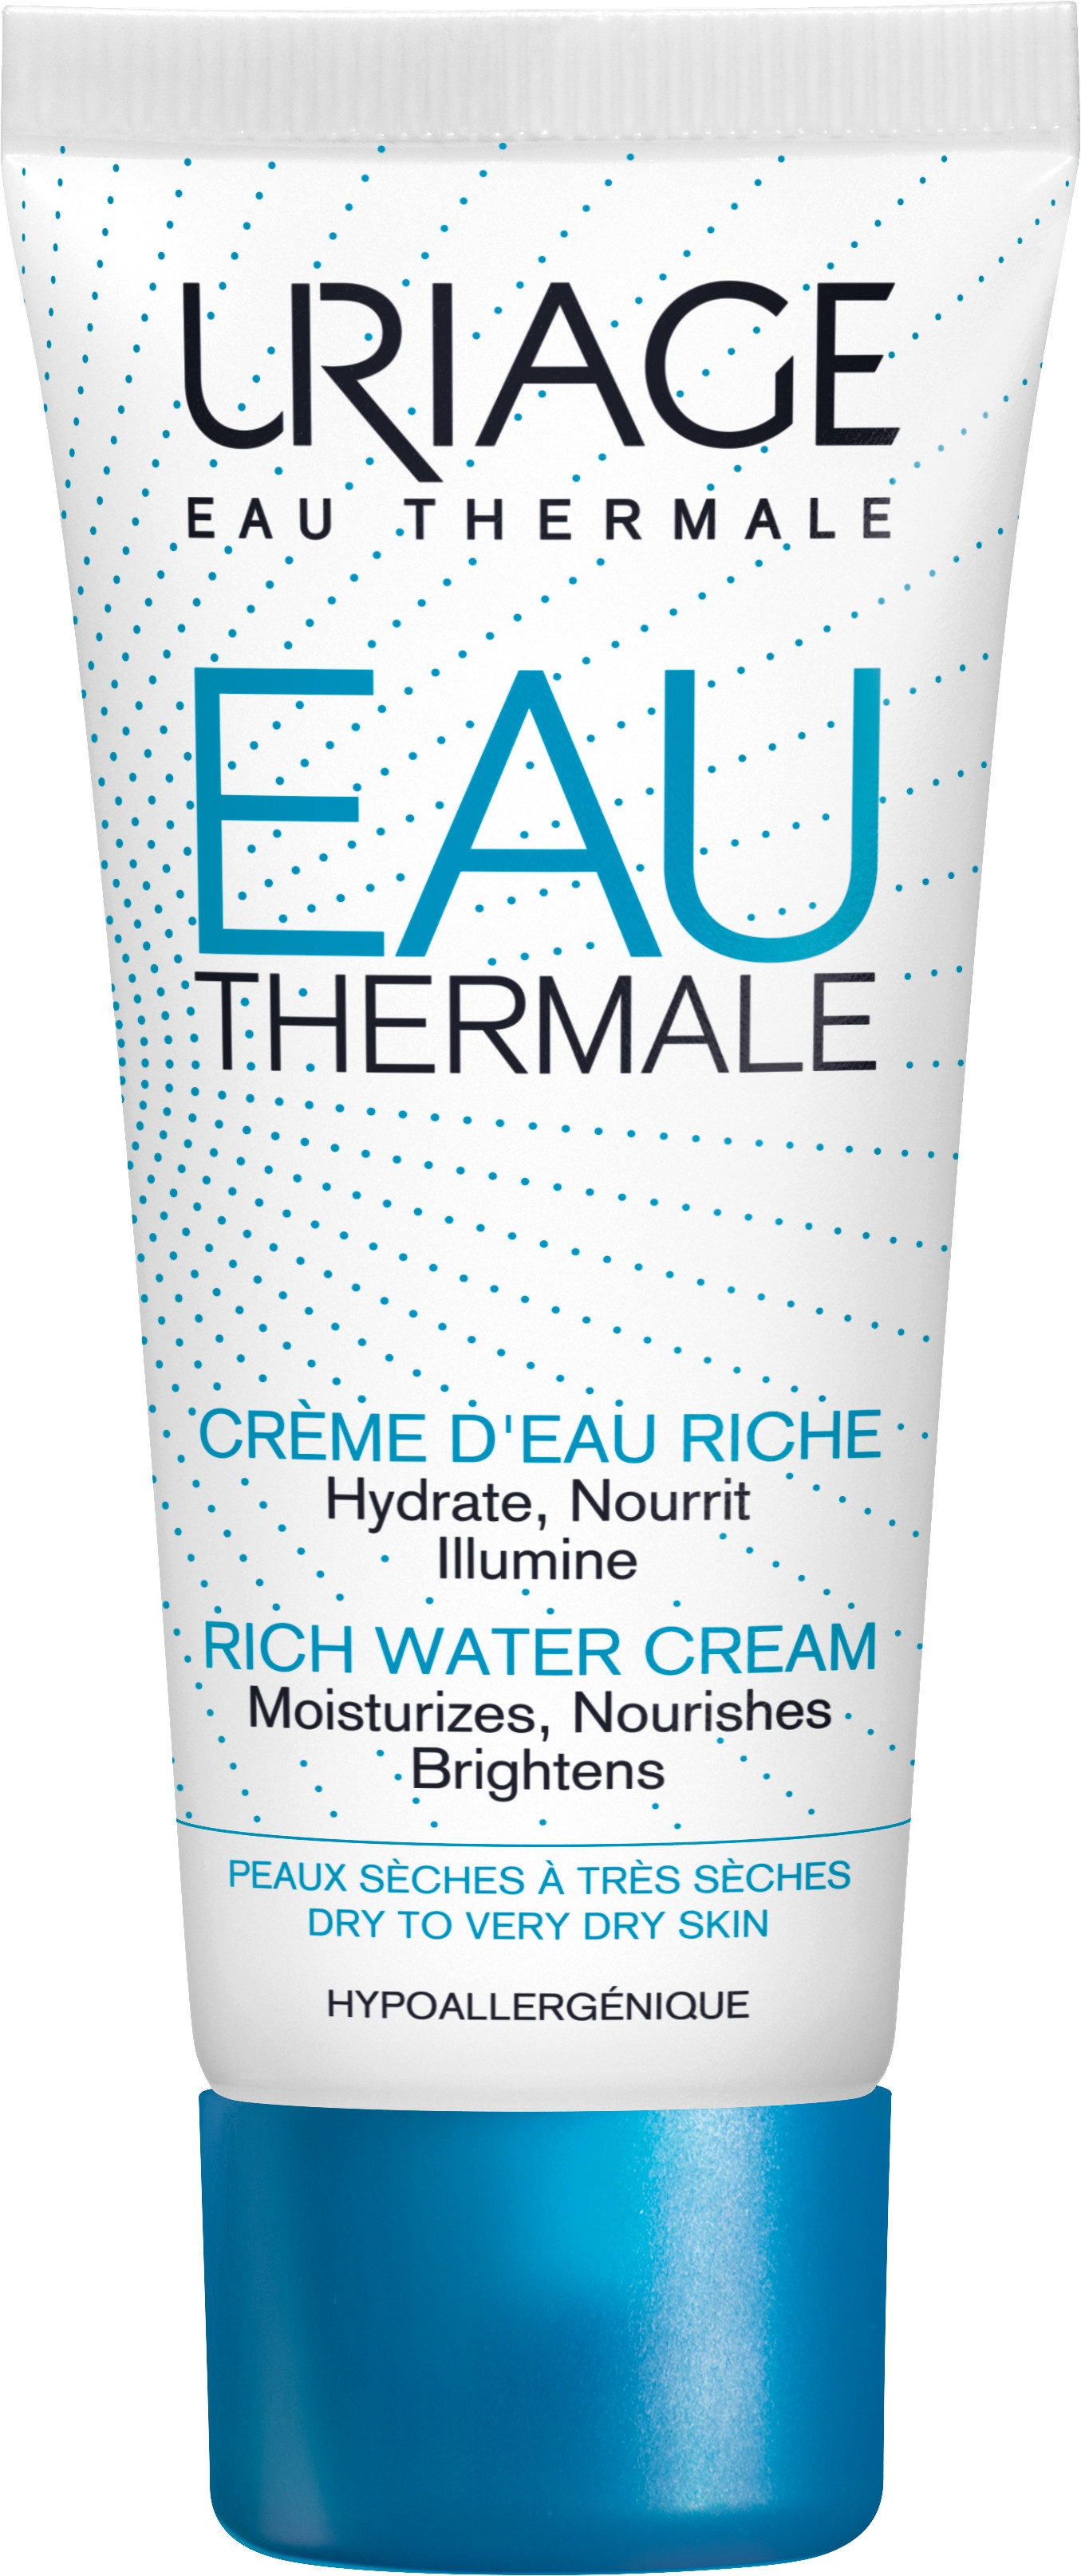 Uriage Eau Thermale - Water Cream